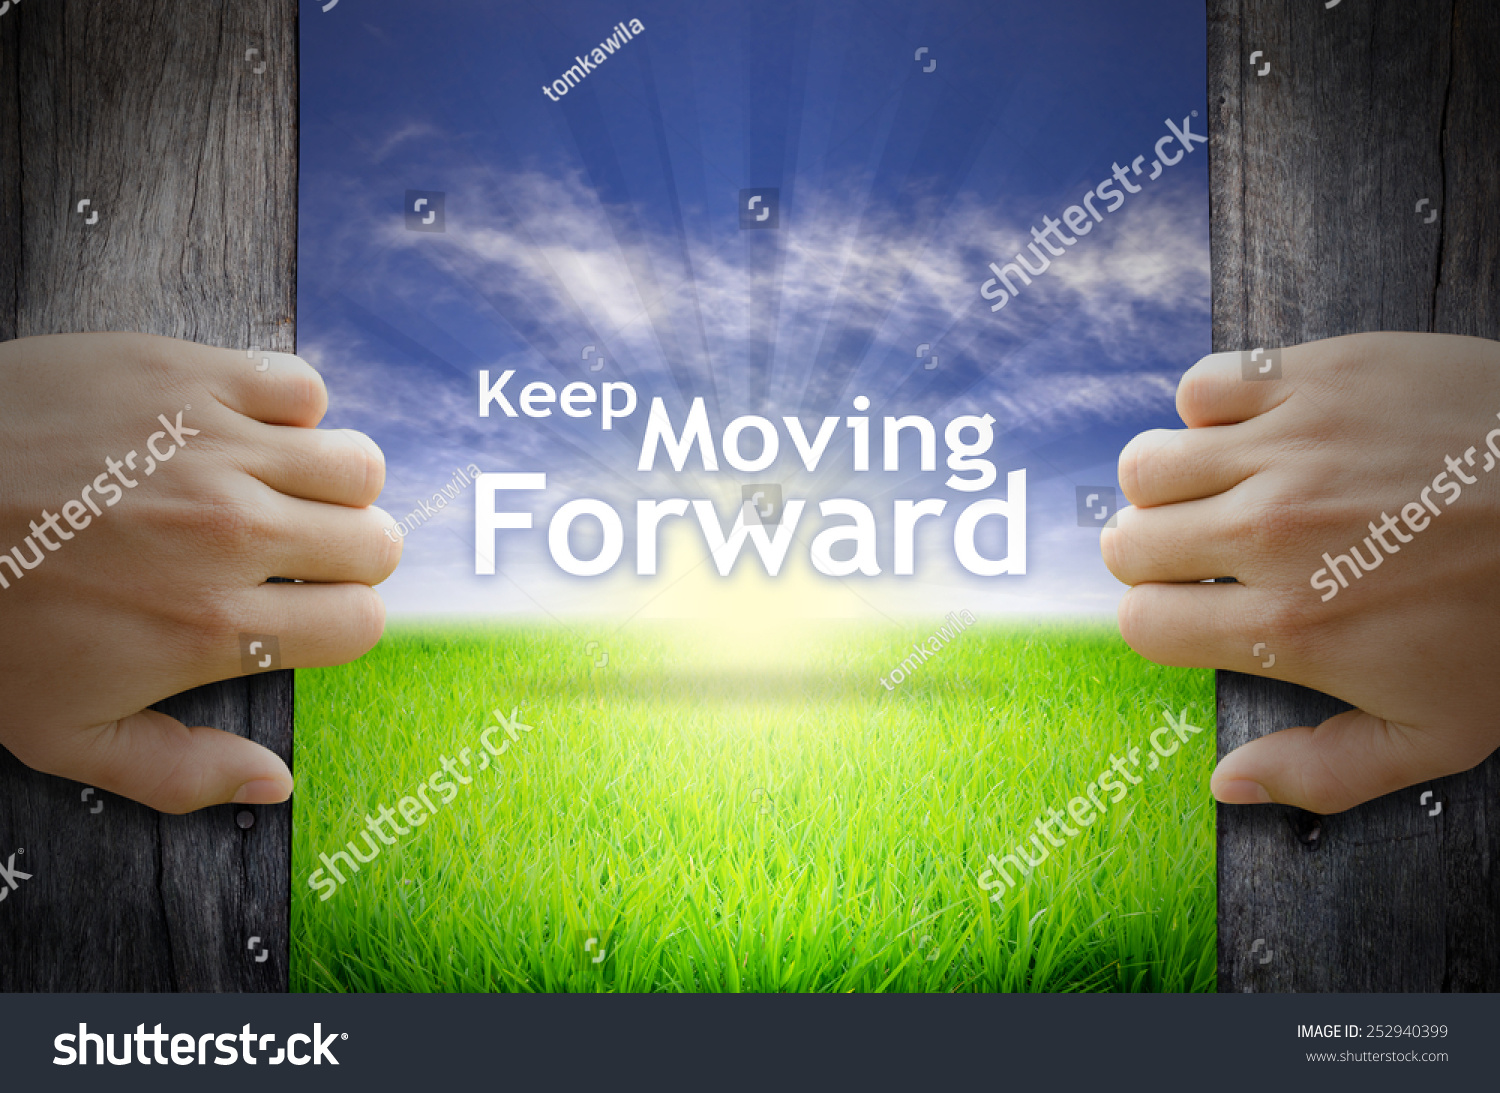 20 Encouraging Quotes About Moving Forward From A Bad: Motivational Quotes Keep Moving Forward Hands Stock Photo